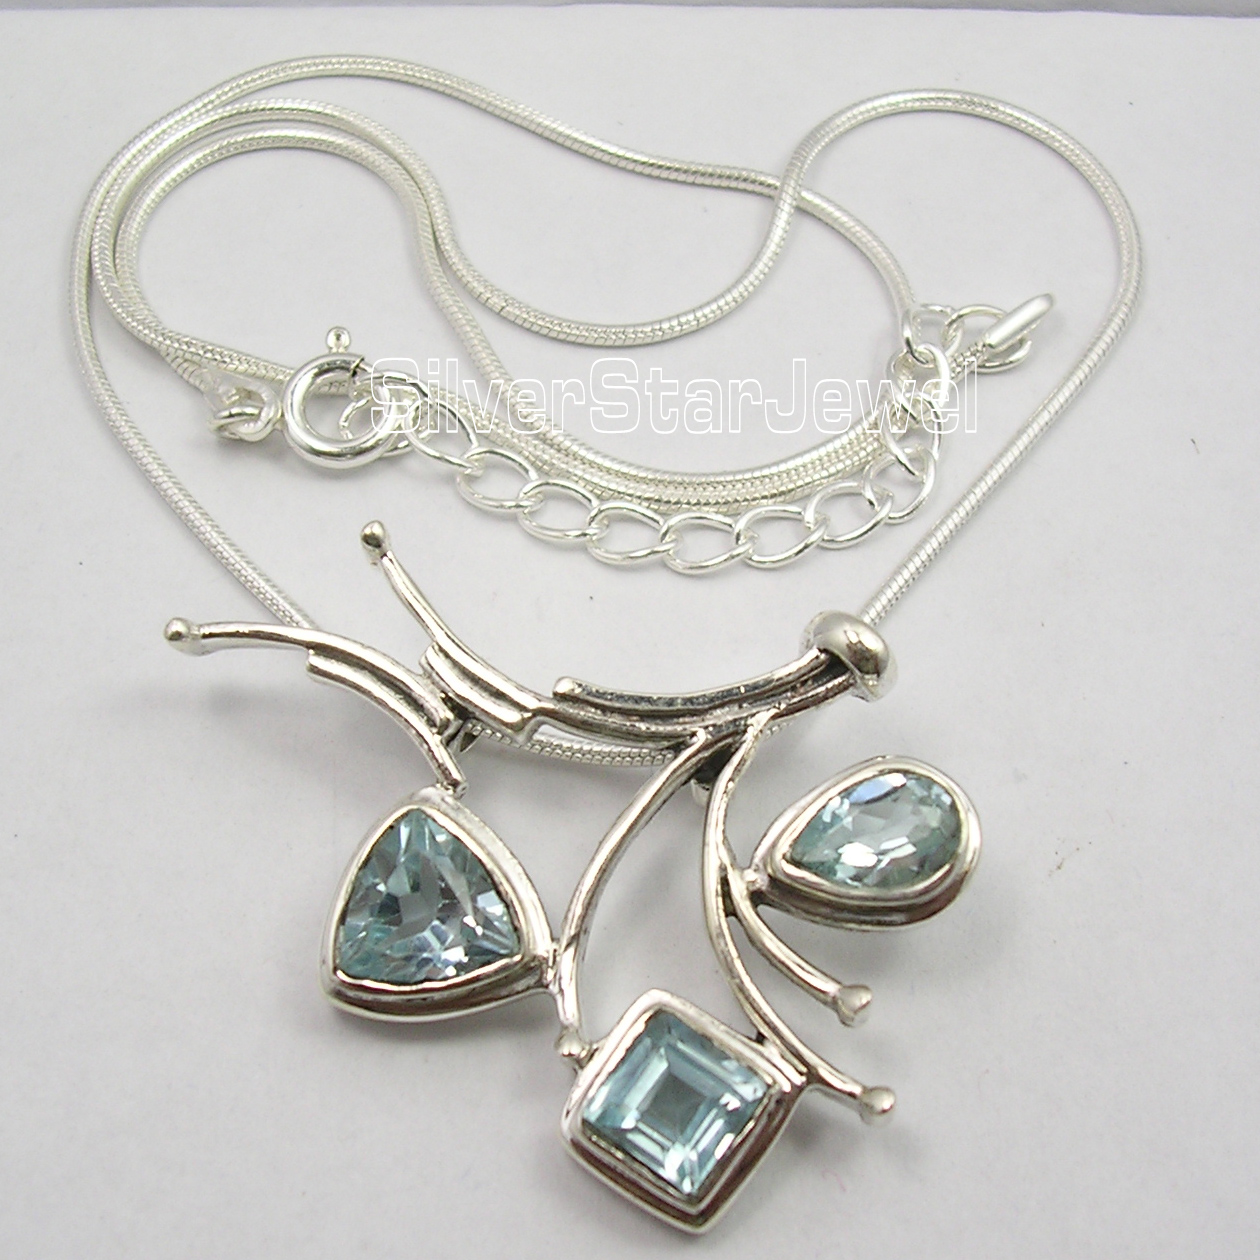 Chanti International Pure Silver Collectible CUT BLUE Topas 3 Gemset UNUSUAL Necklace 18.5 Inches xishixiu 11 16 inches